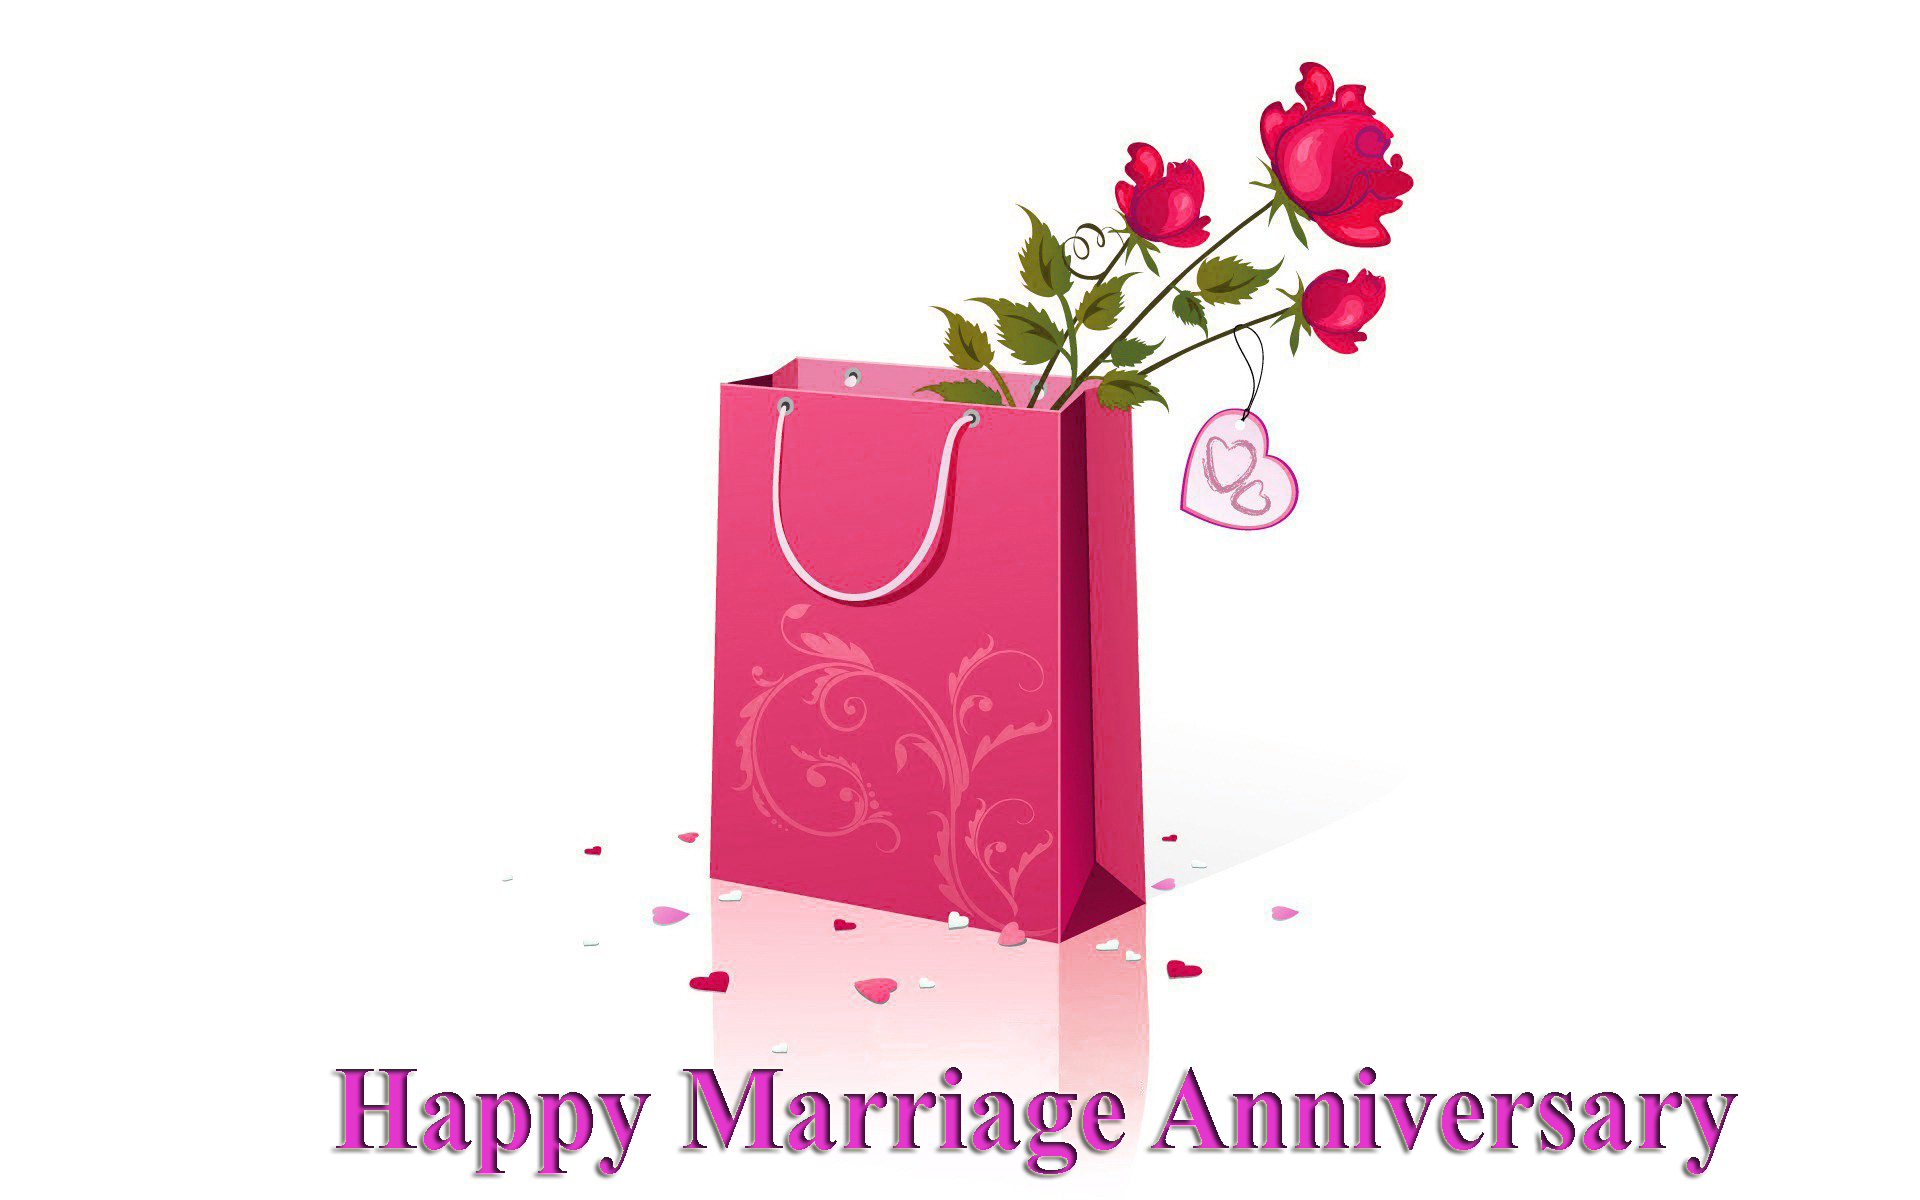 Best happy wedding anniversary wishes images cards for Best marriage anniversary gifts